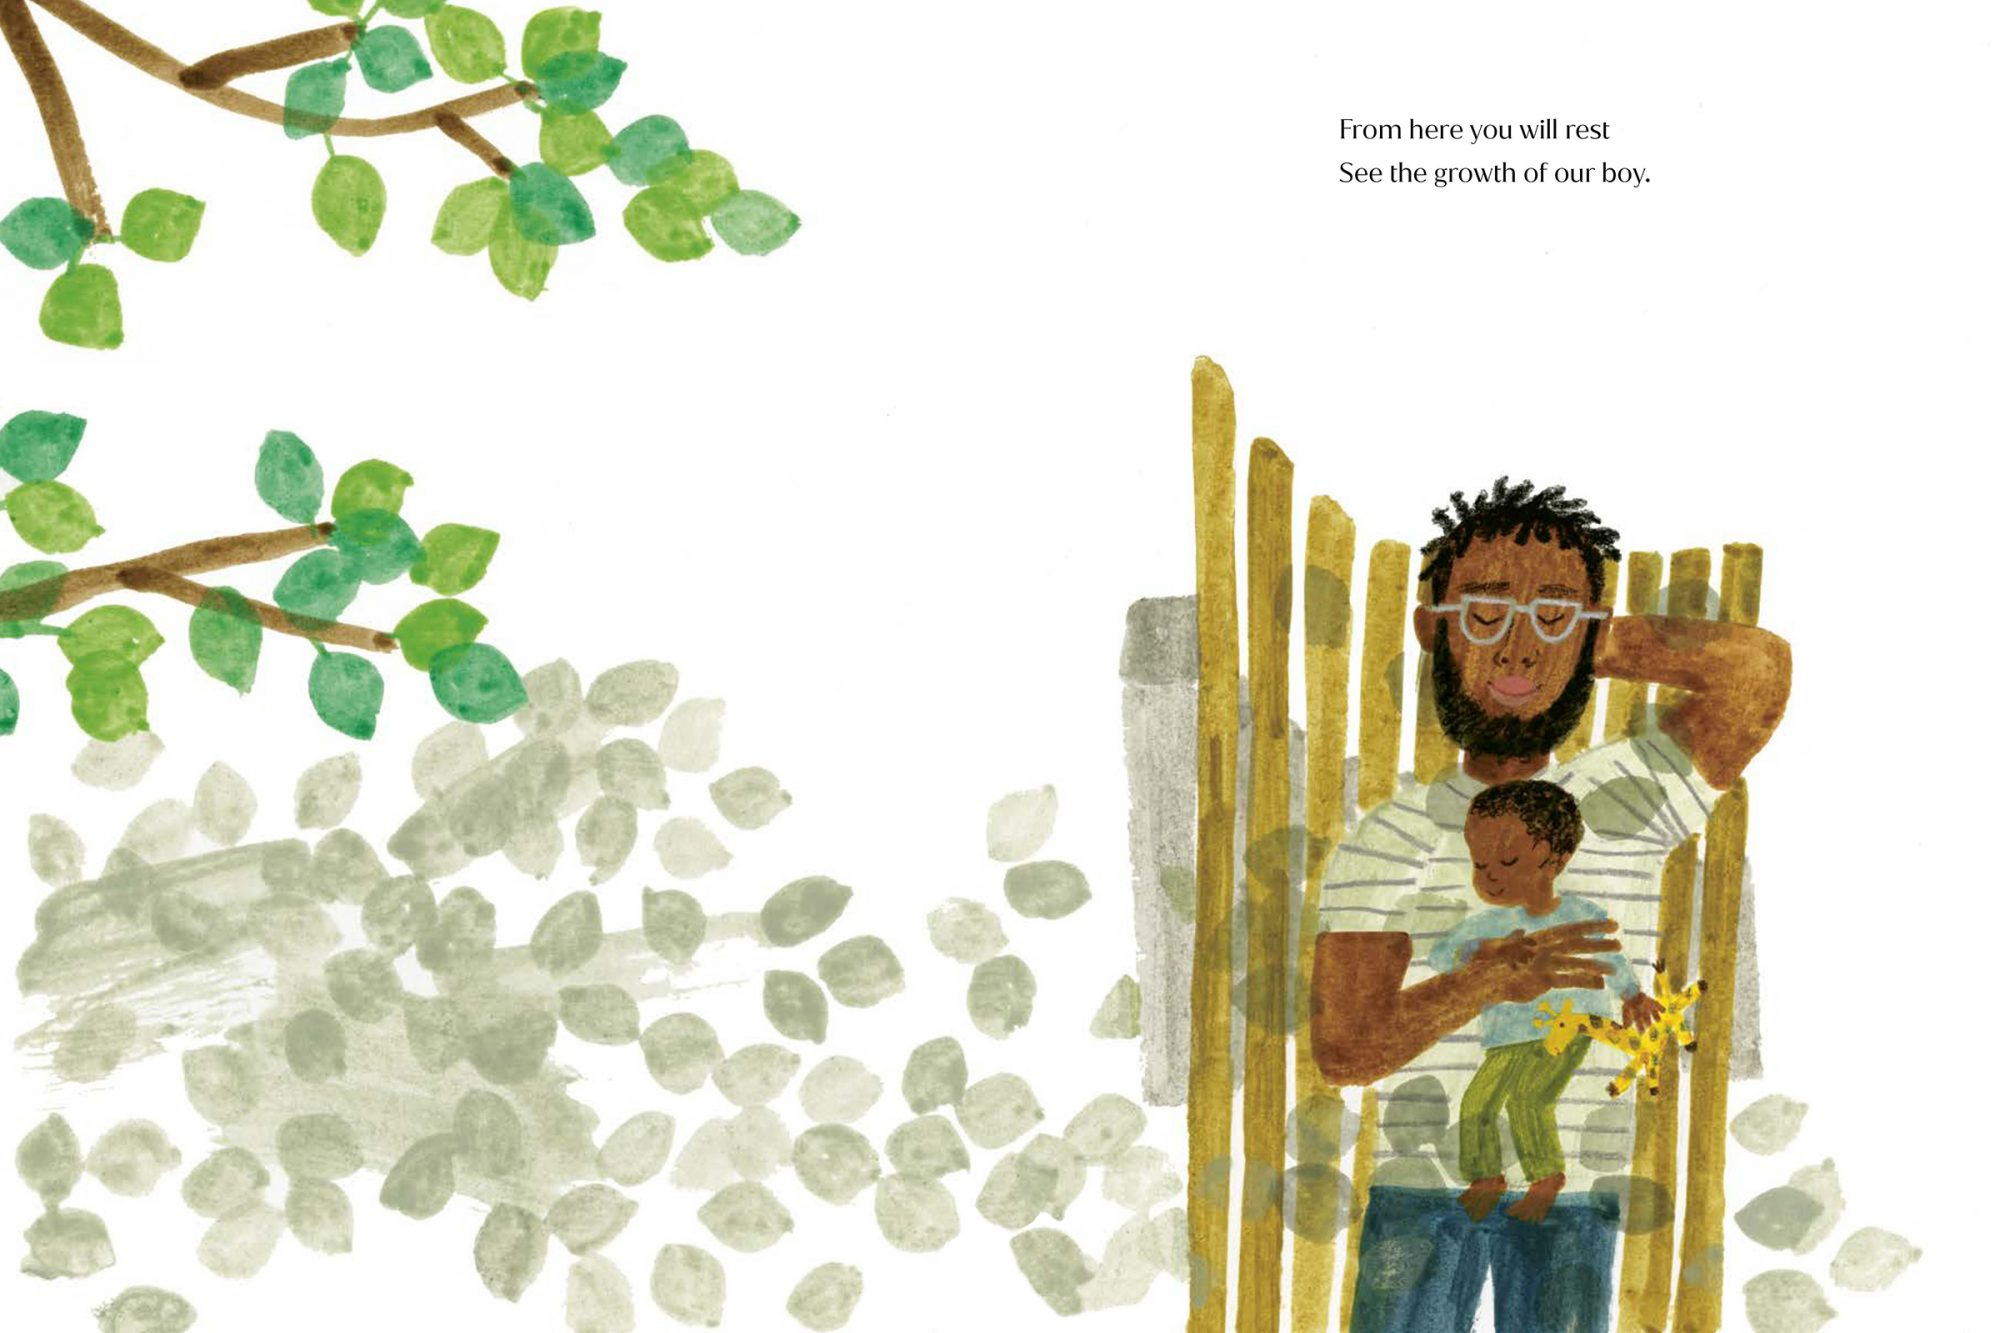 Meghan Markle's new children's book, The Bench